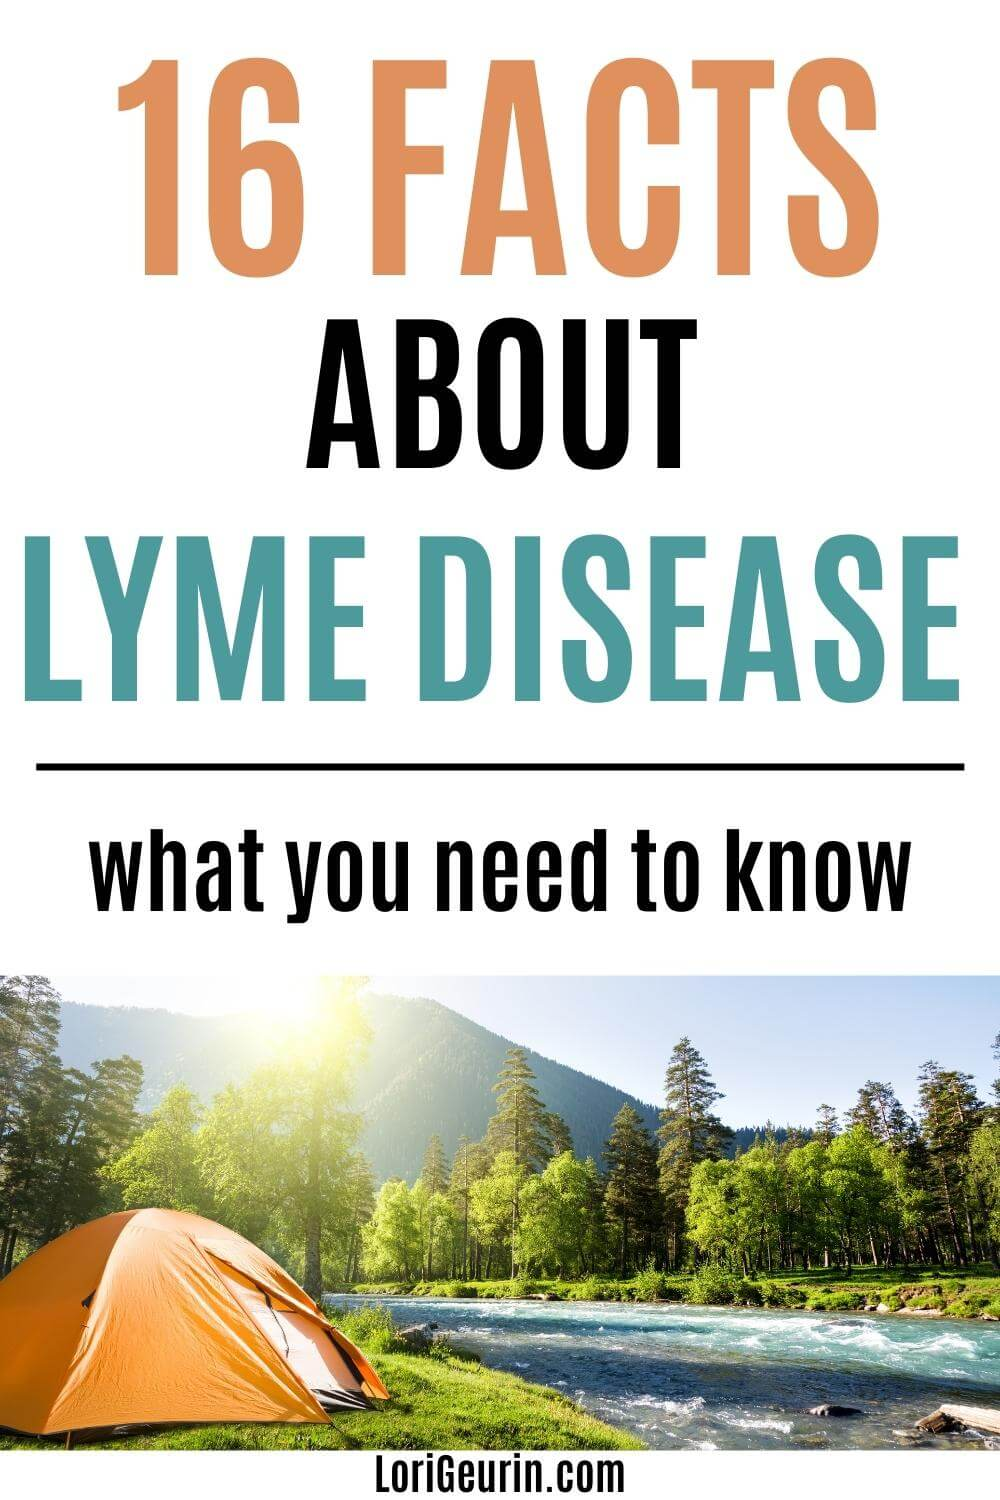 Lyme disease / tent and a river